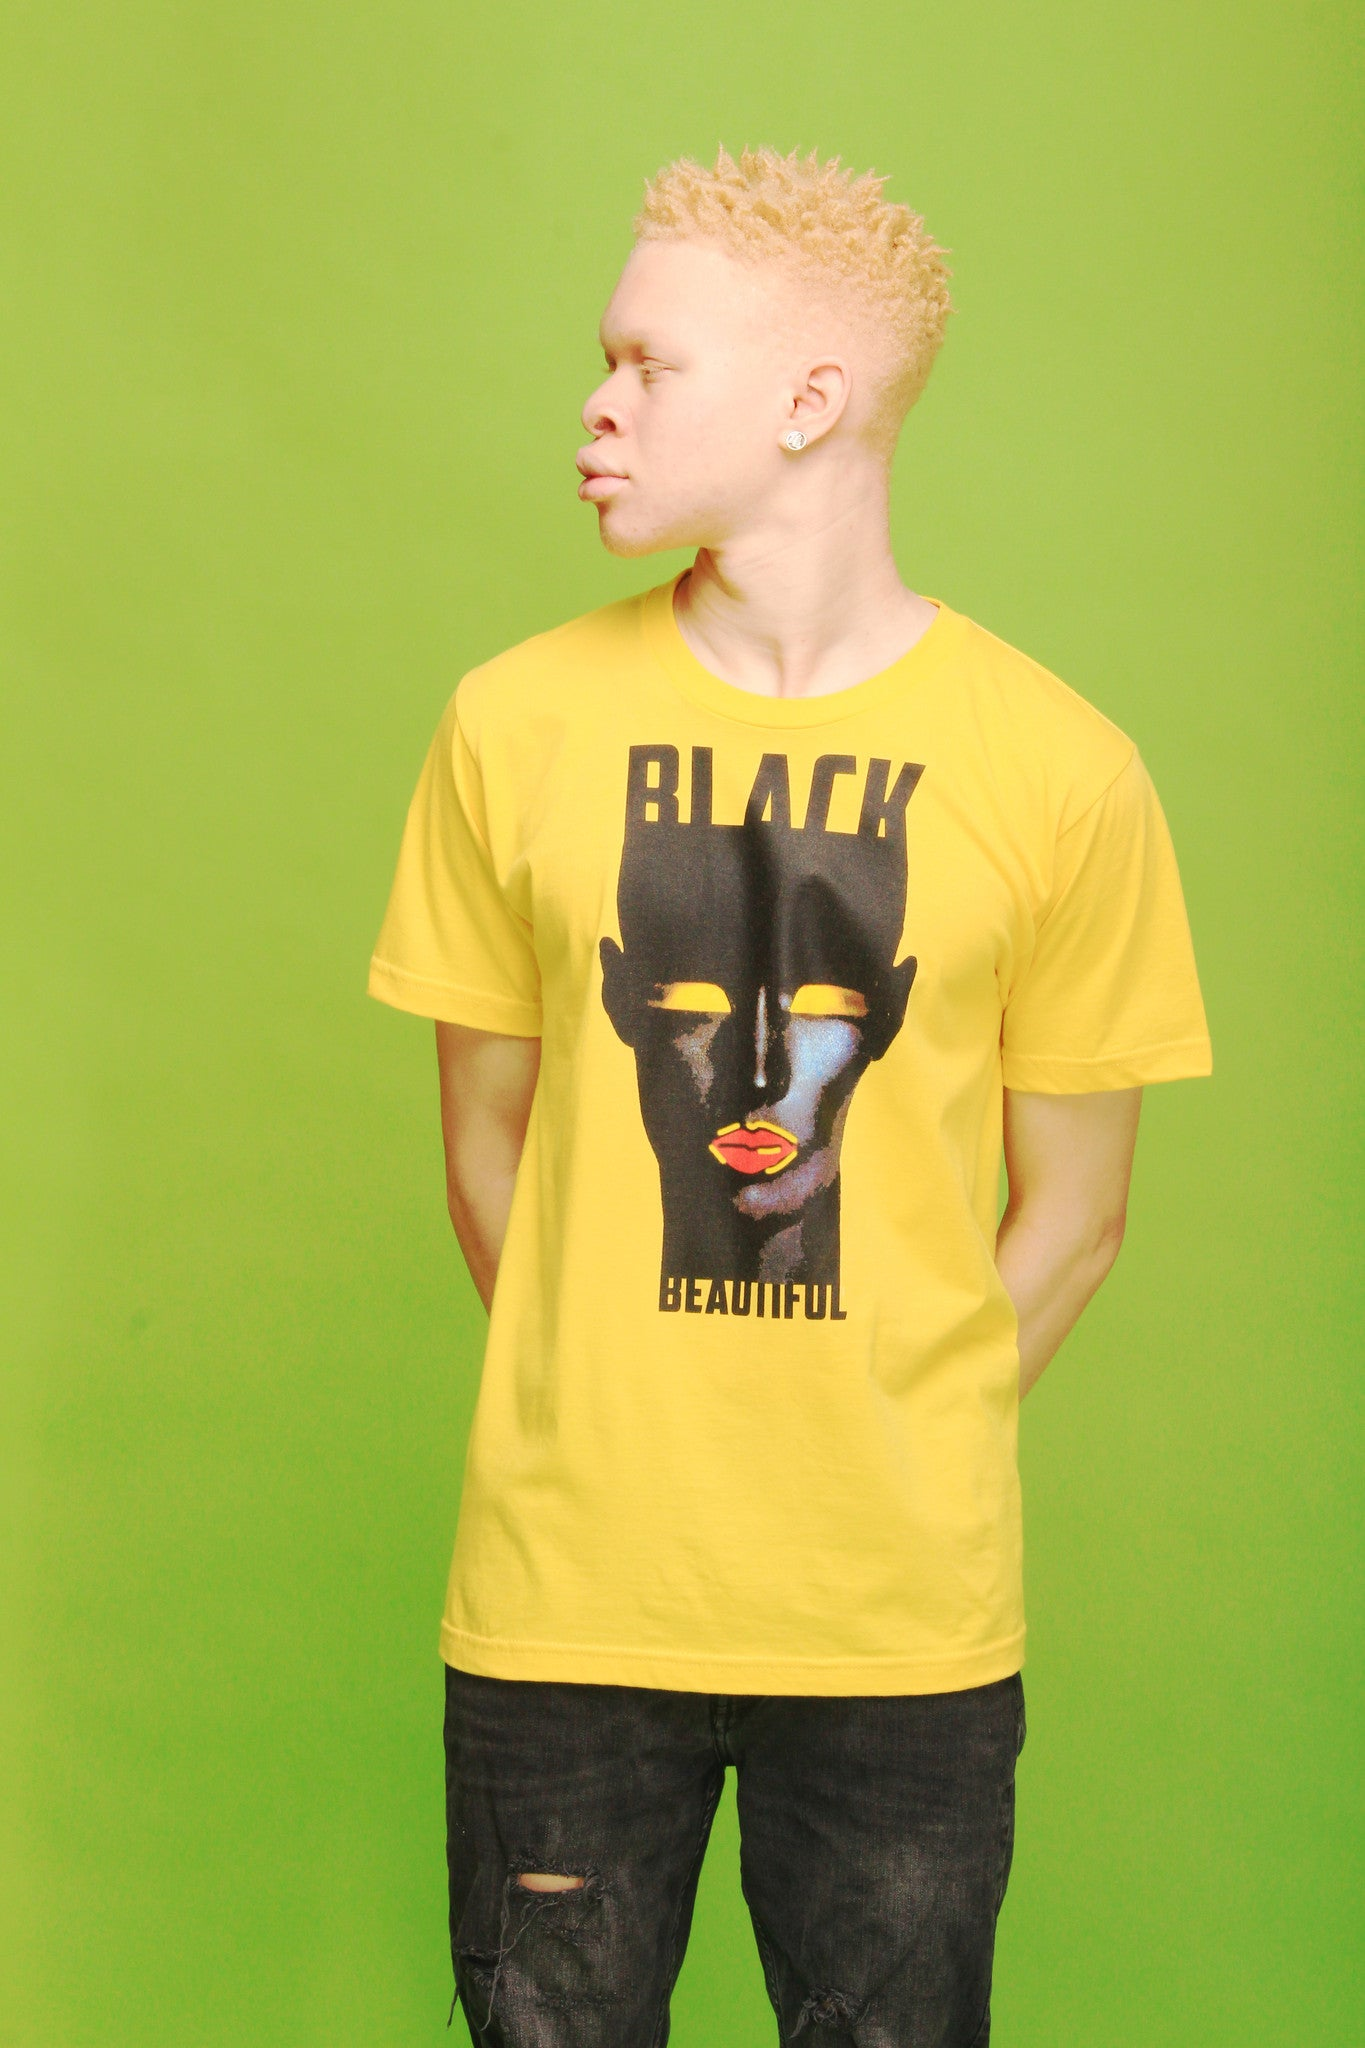 BLACK BEAUTIFUL SABLE UNISEX T-SHIRT - SIOBHAN HUNTER BRAND